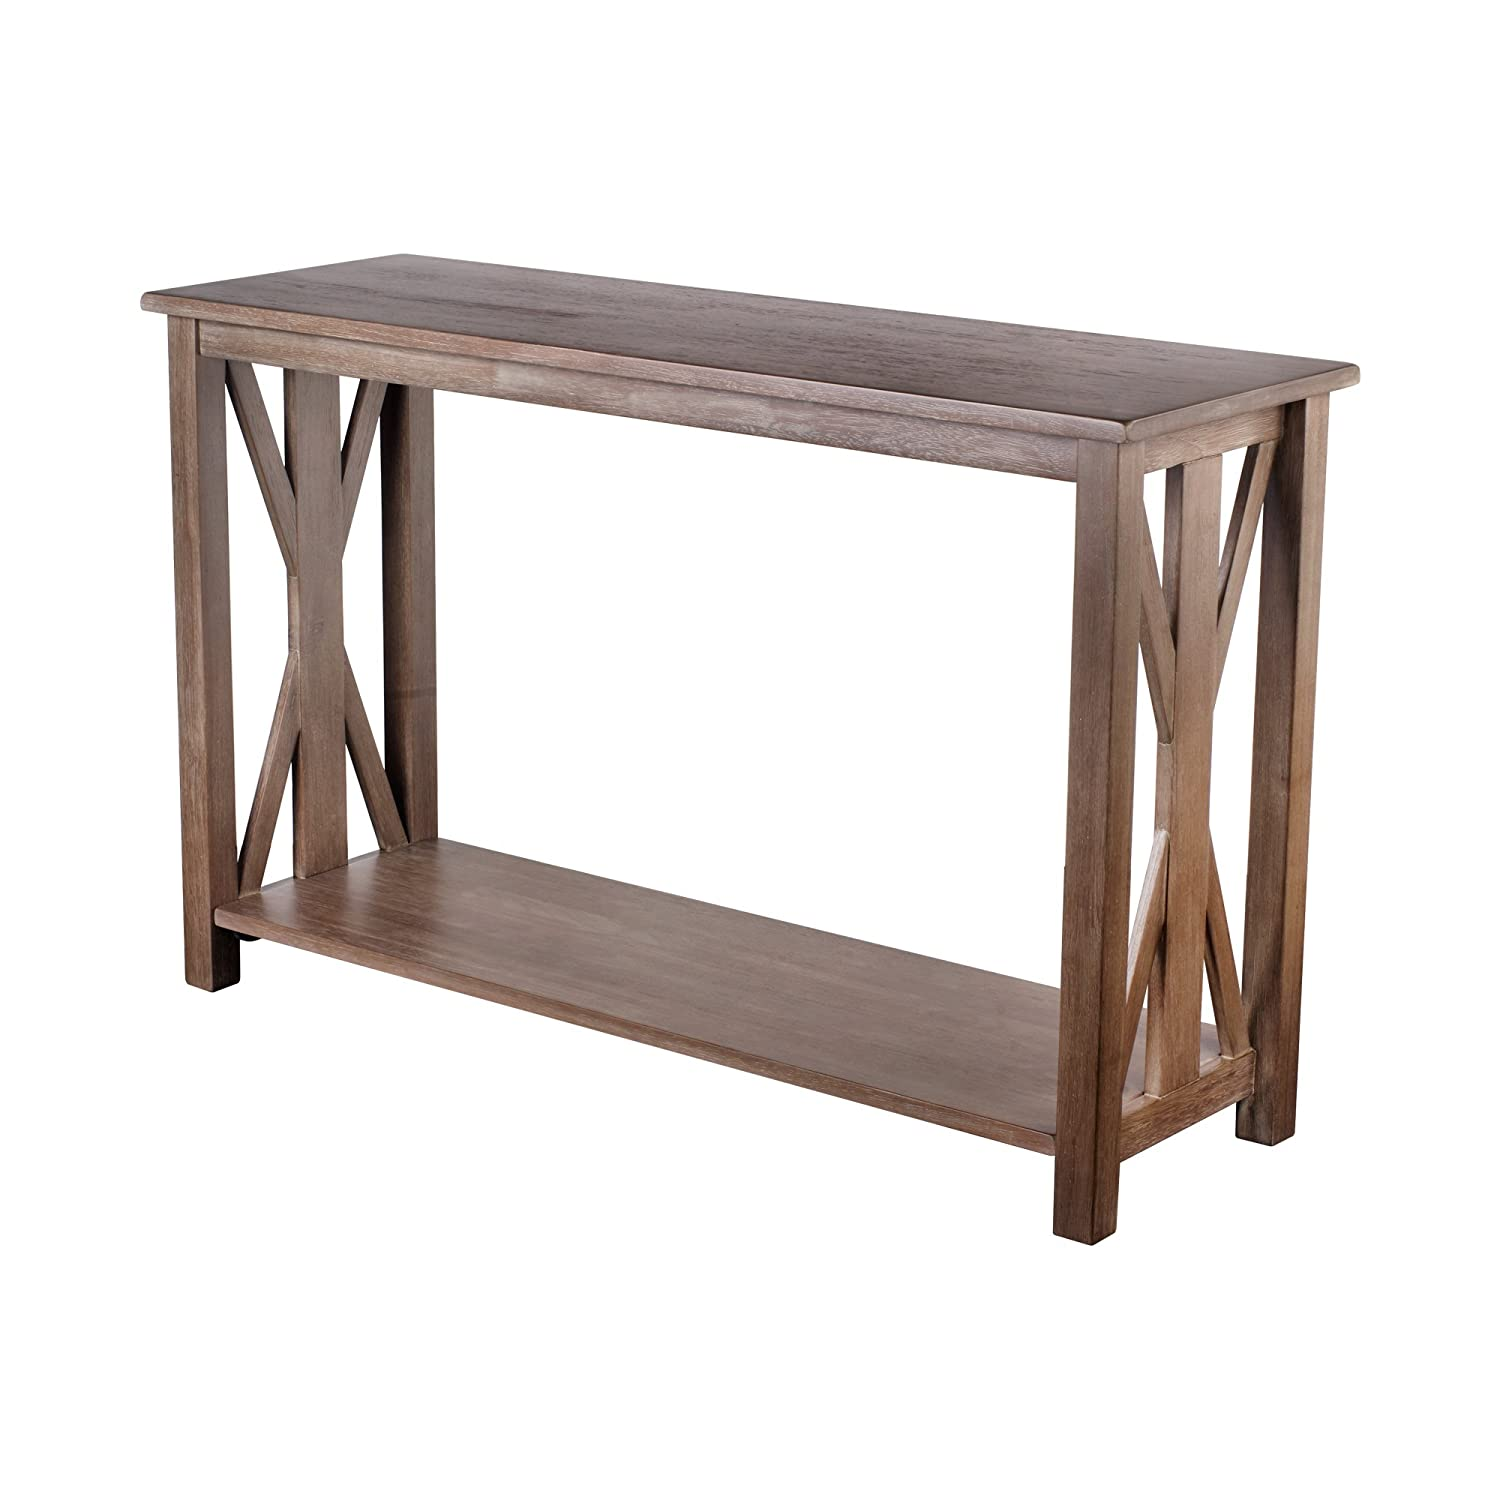 Amazon sofa table solid wood rustic farmhouse style console amazon sofa table solid wood rustic farmhouse style console table east end collection weathered gray living room furniture kitchen dining geotapseo Gallery